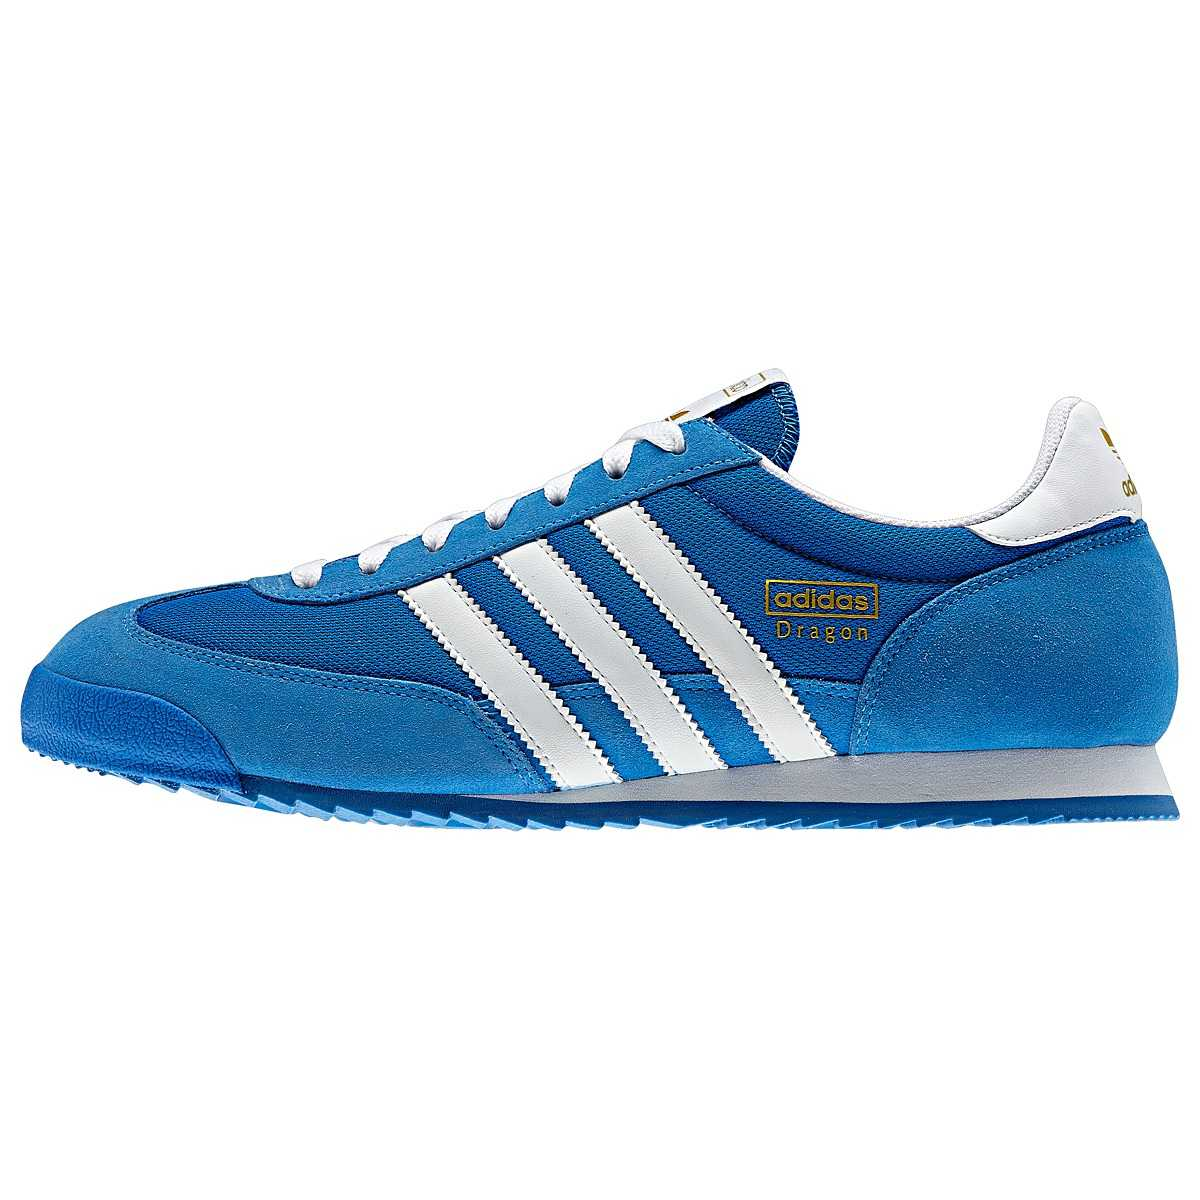 adidas originals dragon schuhe turnschuhe sneaker herren wildleder blau ebay. Black Bedroom Furniture Sets. Home Design Ideas